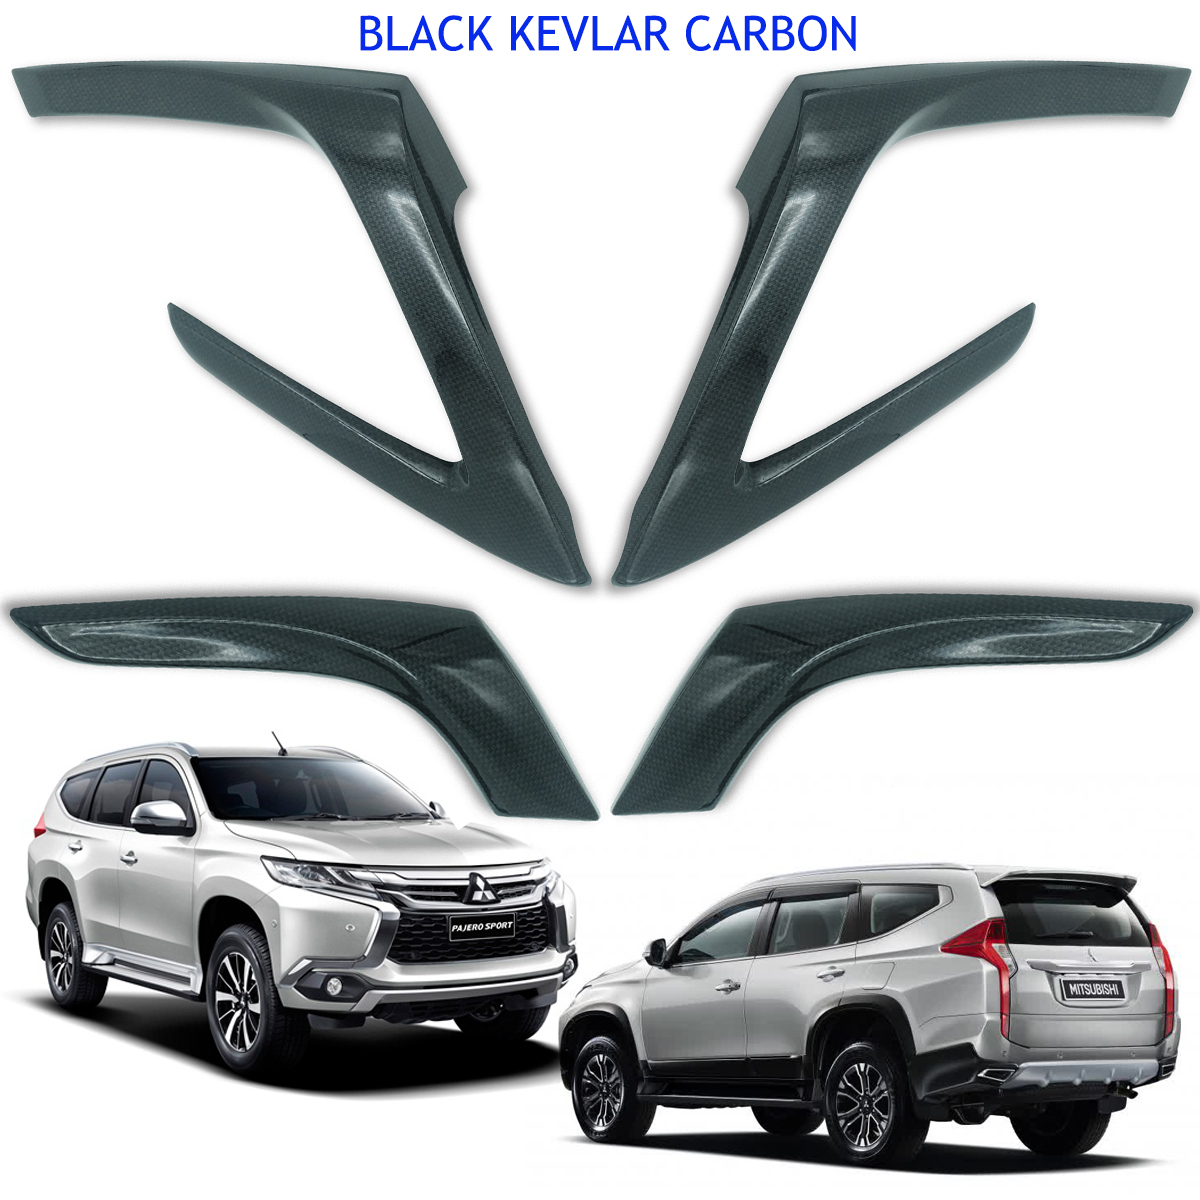 BLACK Carbon 4DOOR HANDLE BOWL INSERT COVER MITSUBISHI MONTERO// PAJERO SPORT V.8